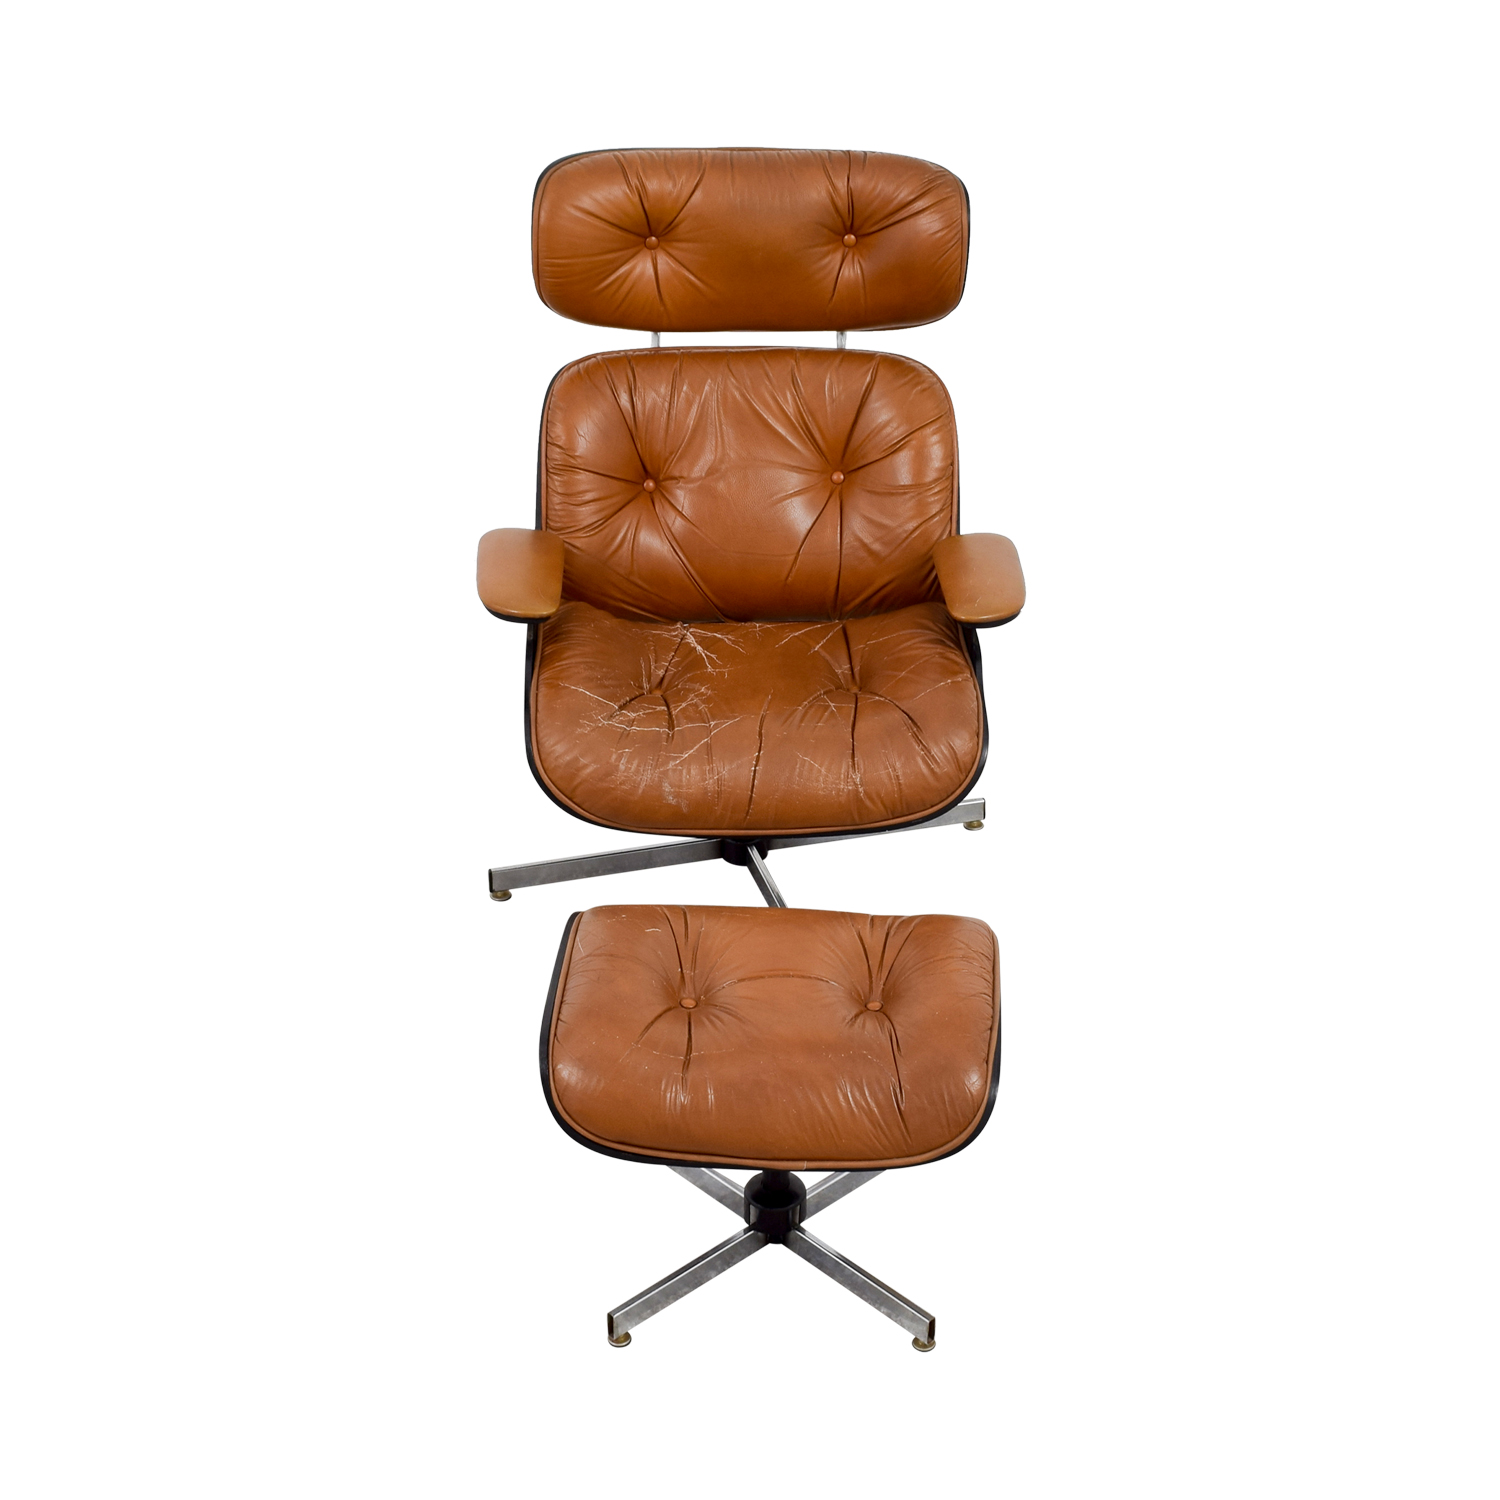 eames leather chair dining ergonomic price johannesburg 69 off replica with ottoman chairs